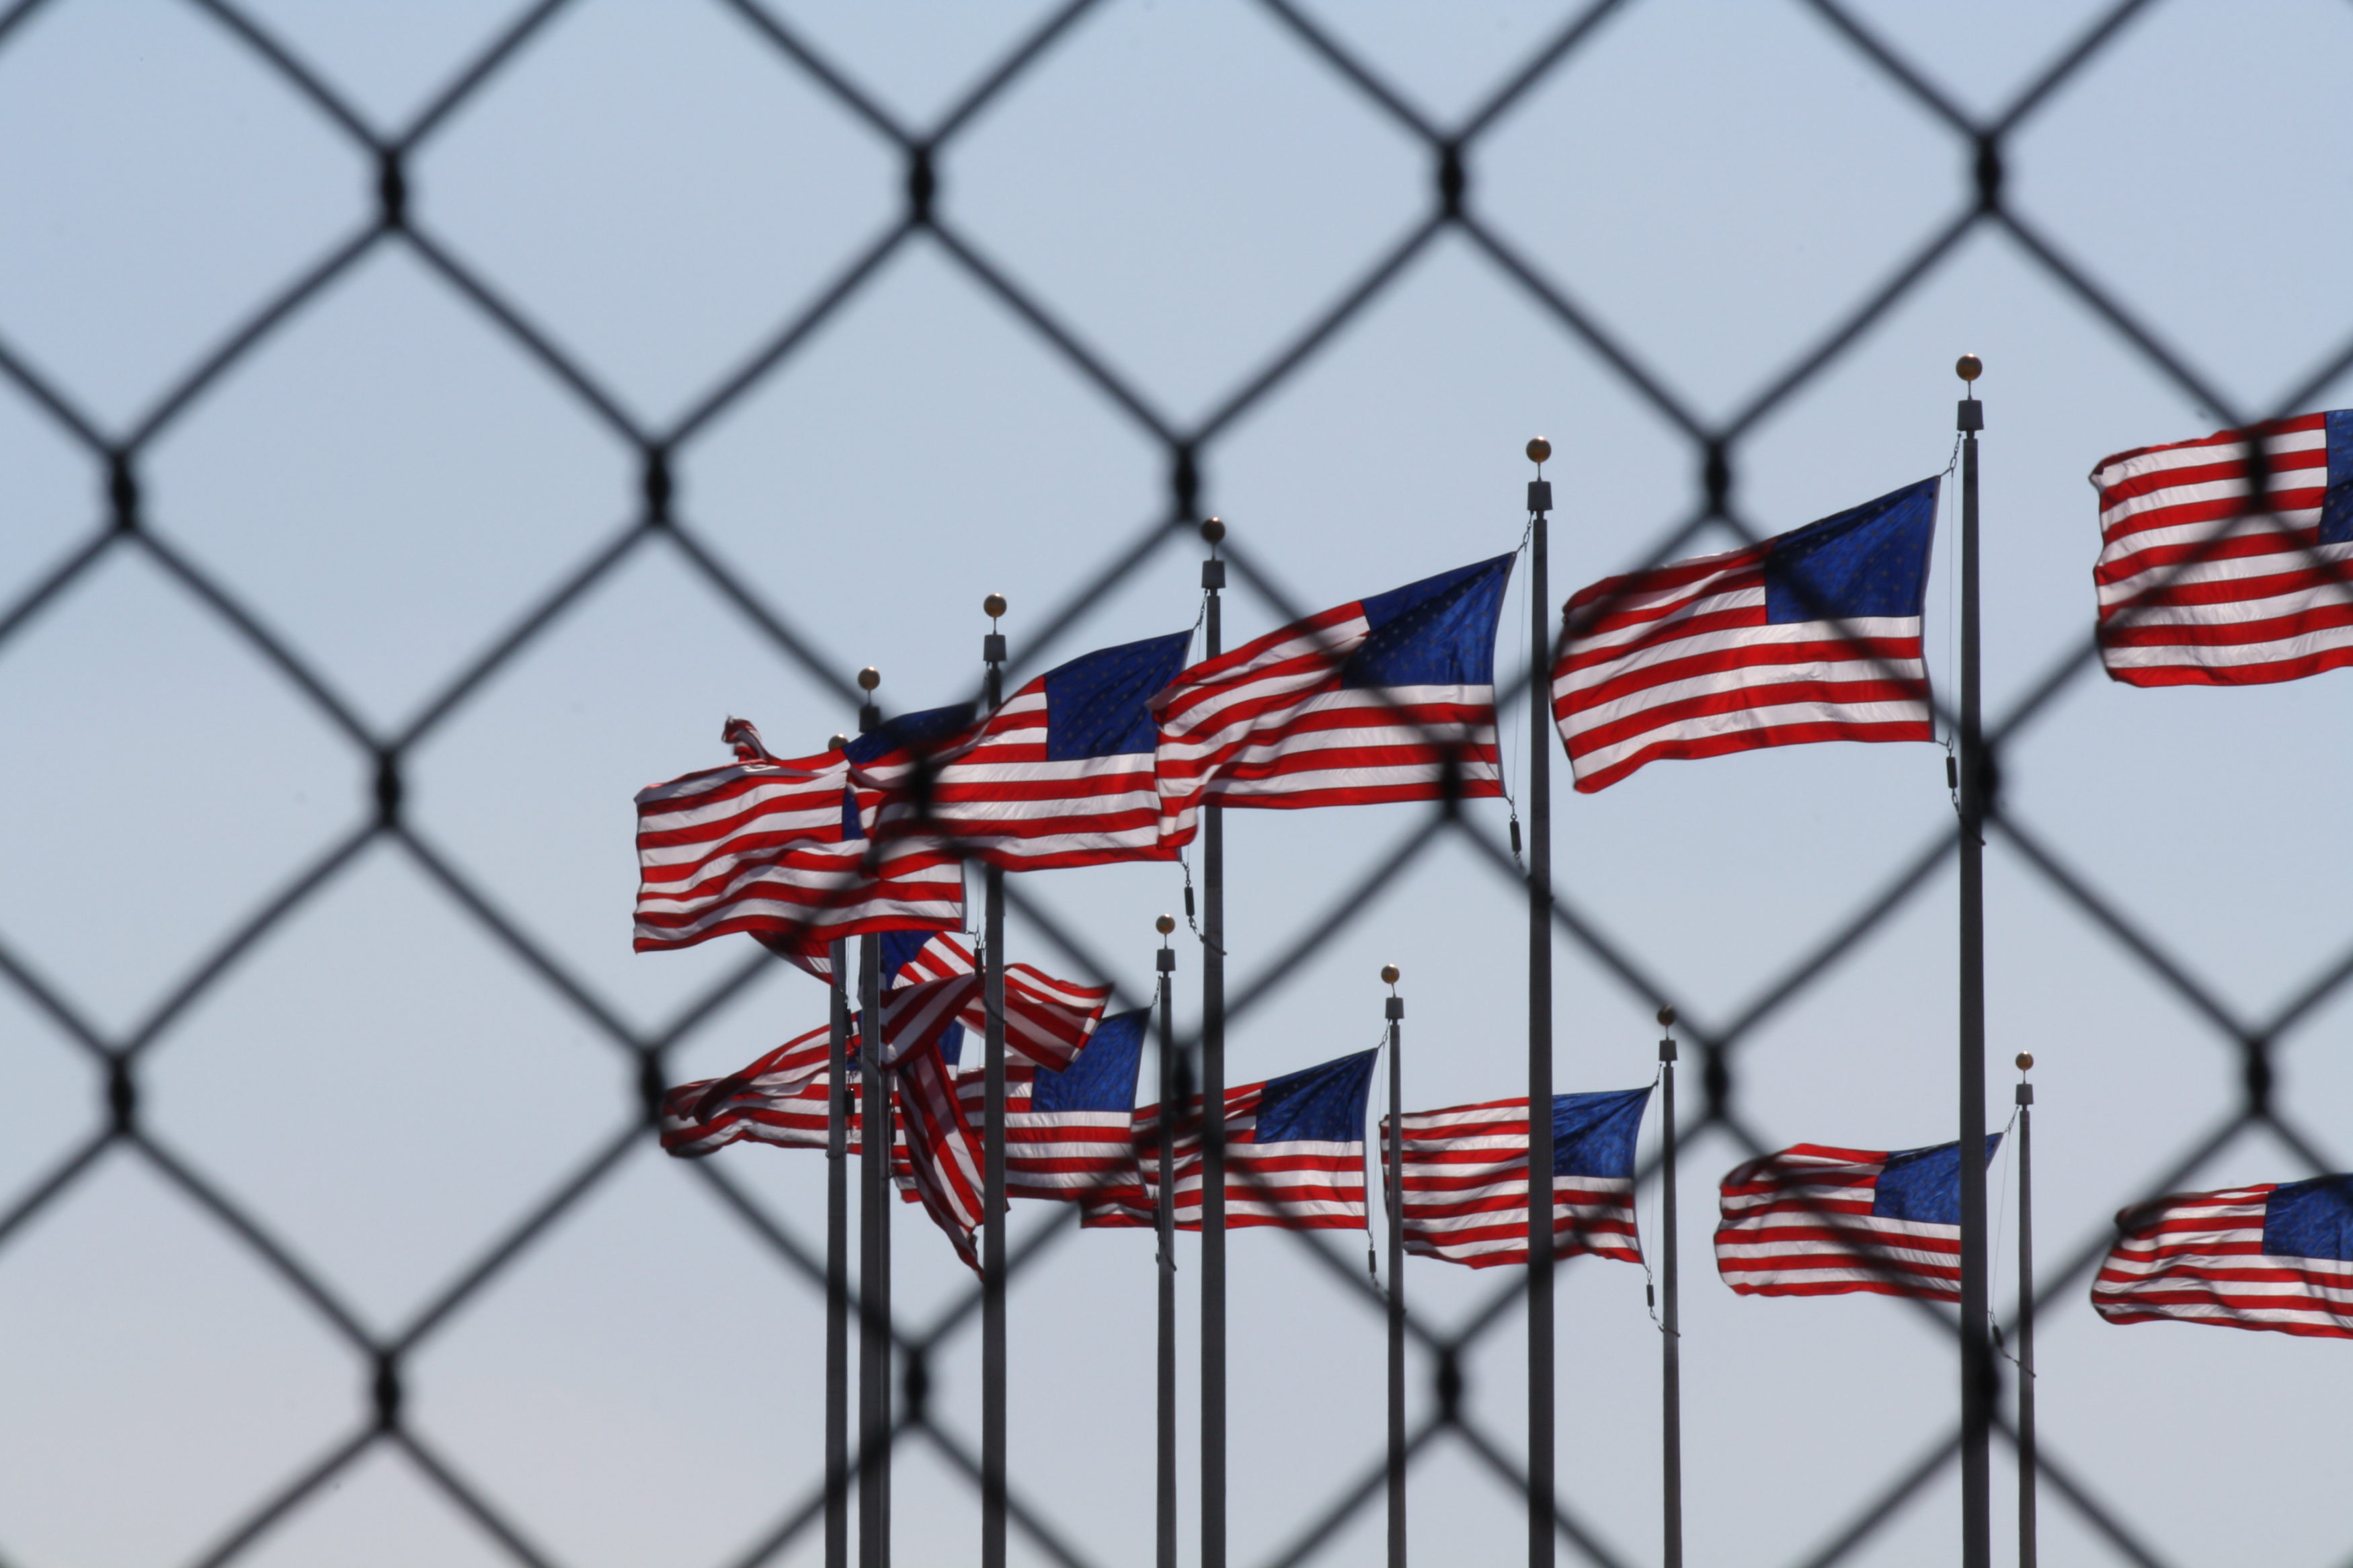 us-flags-behind-fence-prison-3500x2333.jpeg